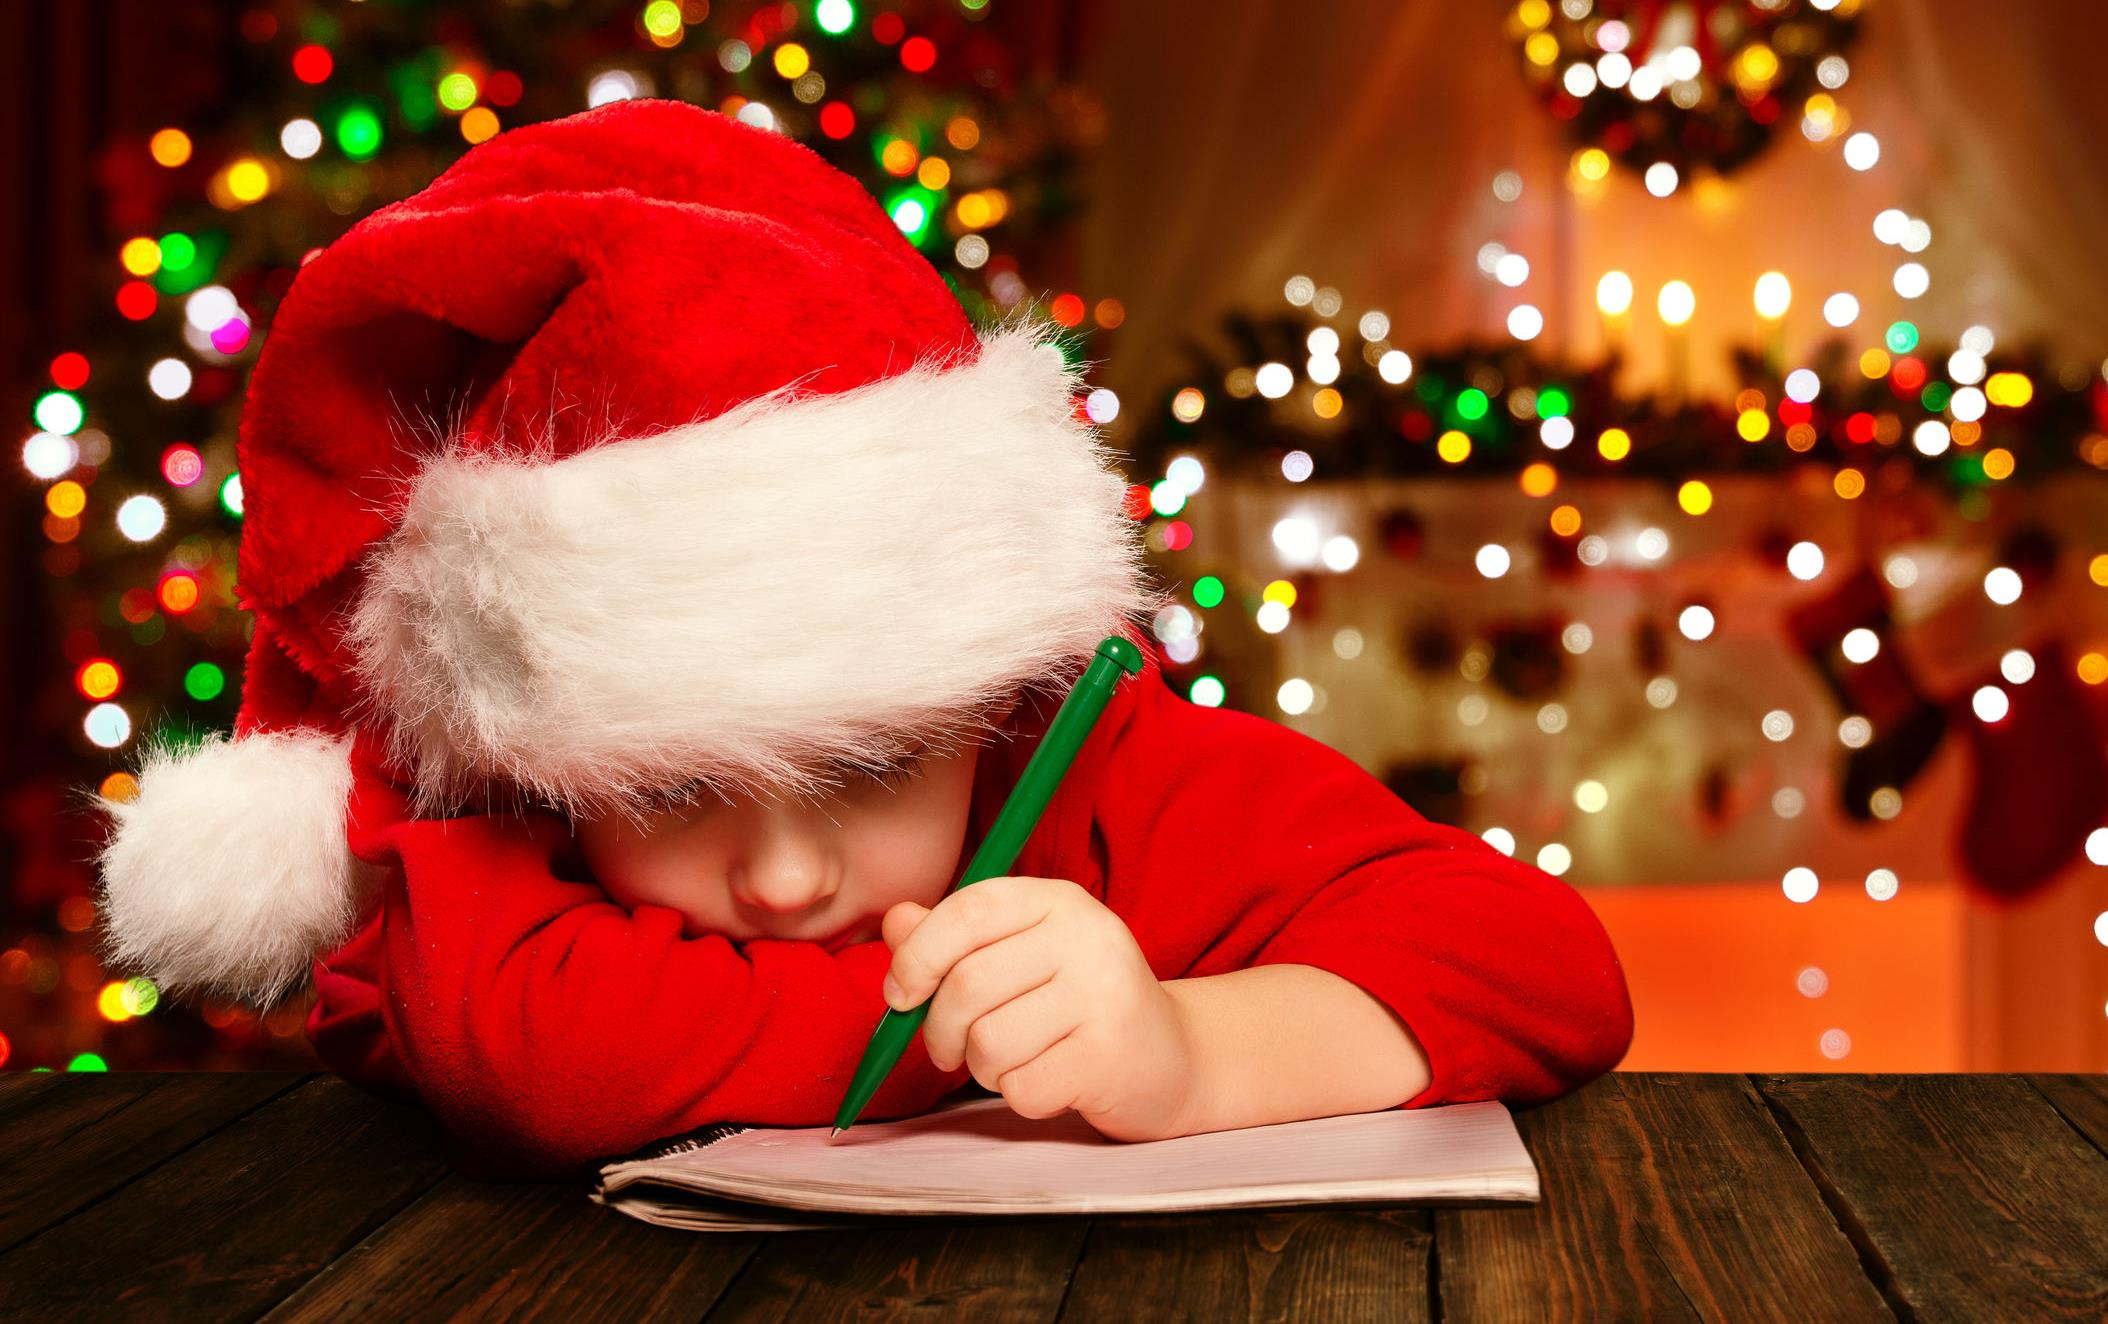 Child wearing Santa hat sits at a table writing on a tablet, Christmas lights in the background